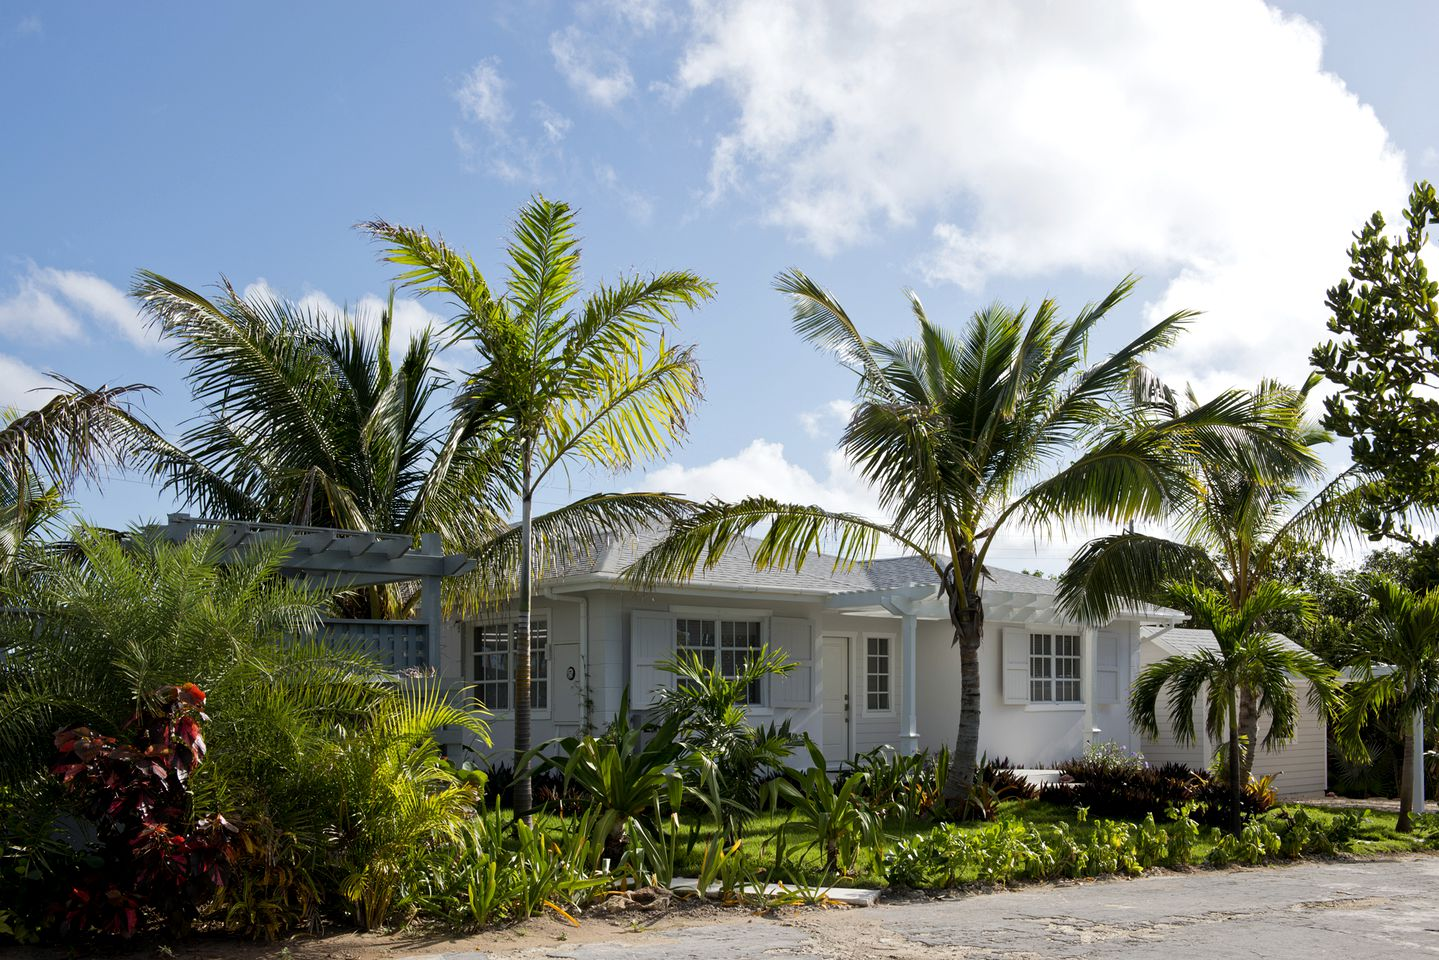 Tropical island villa rental for Bahamas family vacation.